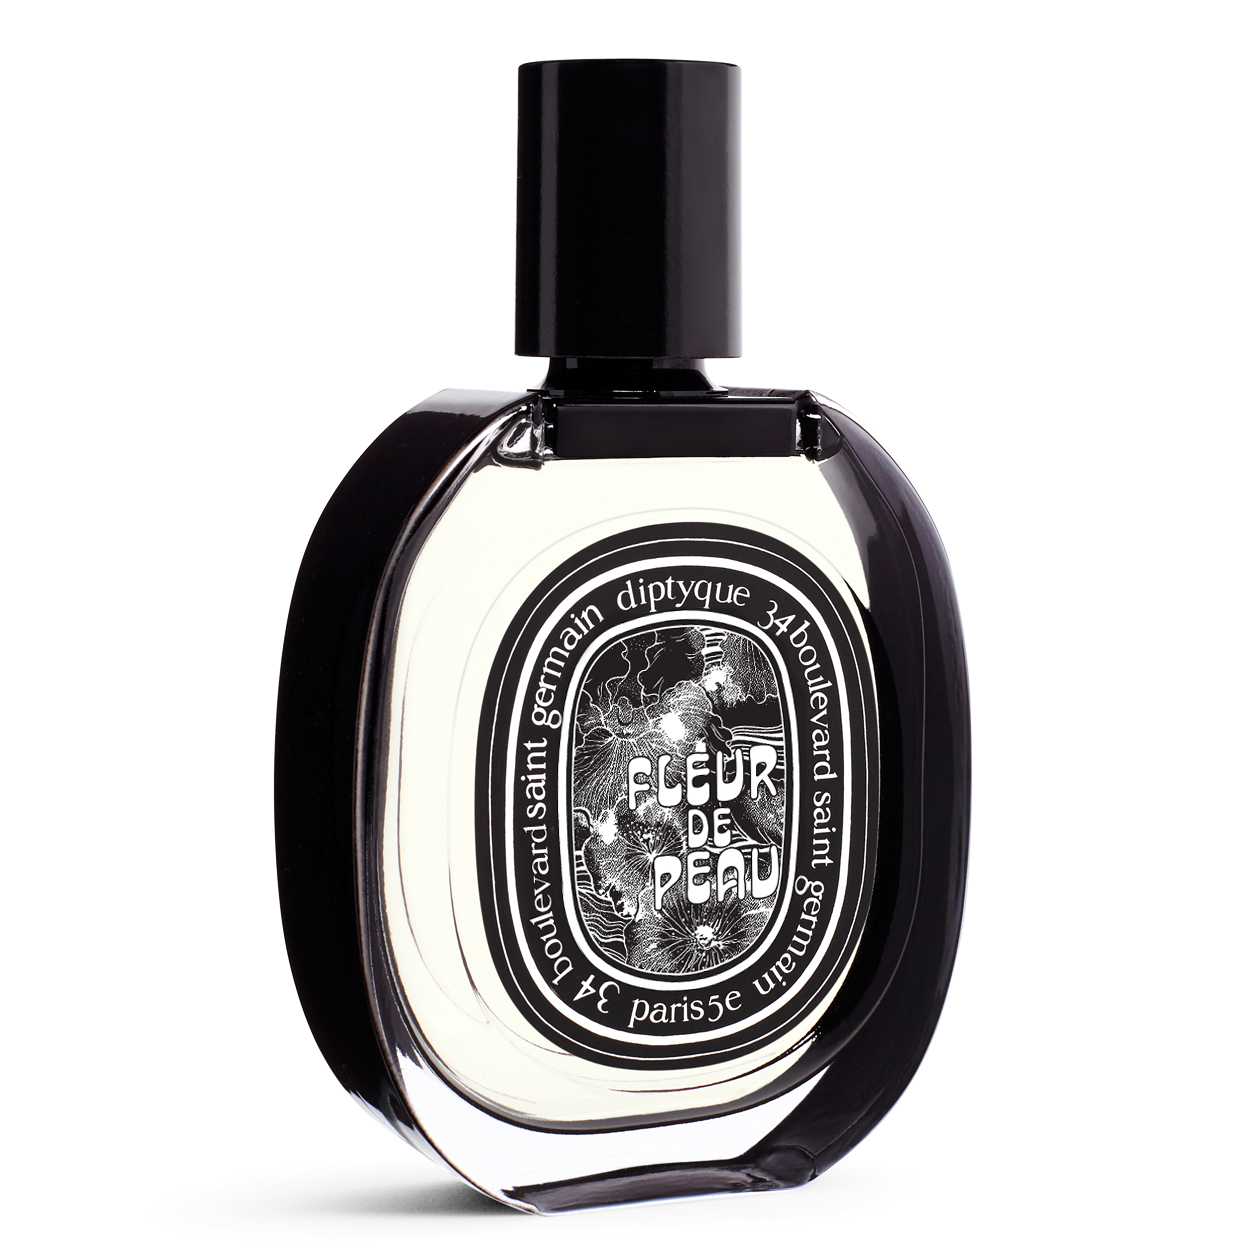 diptyque celebrates 50 years Luxe Diary